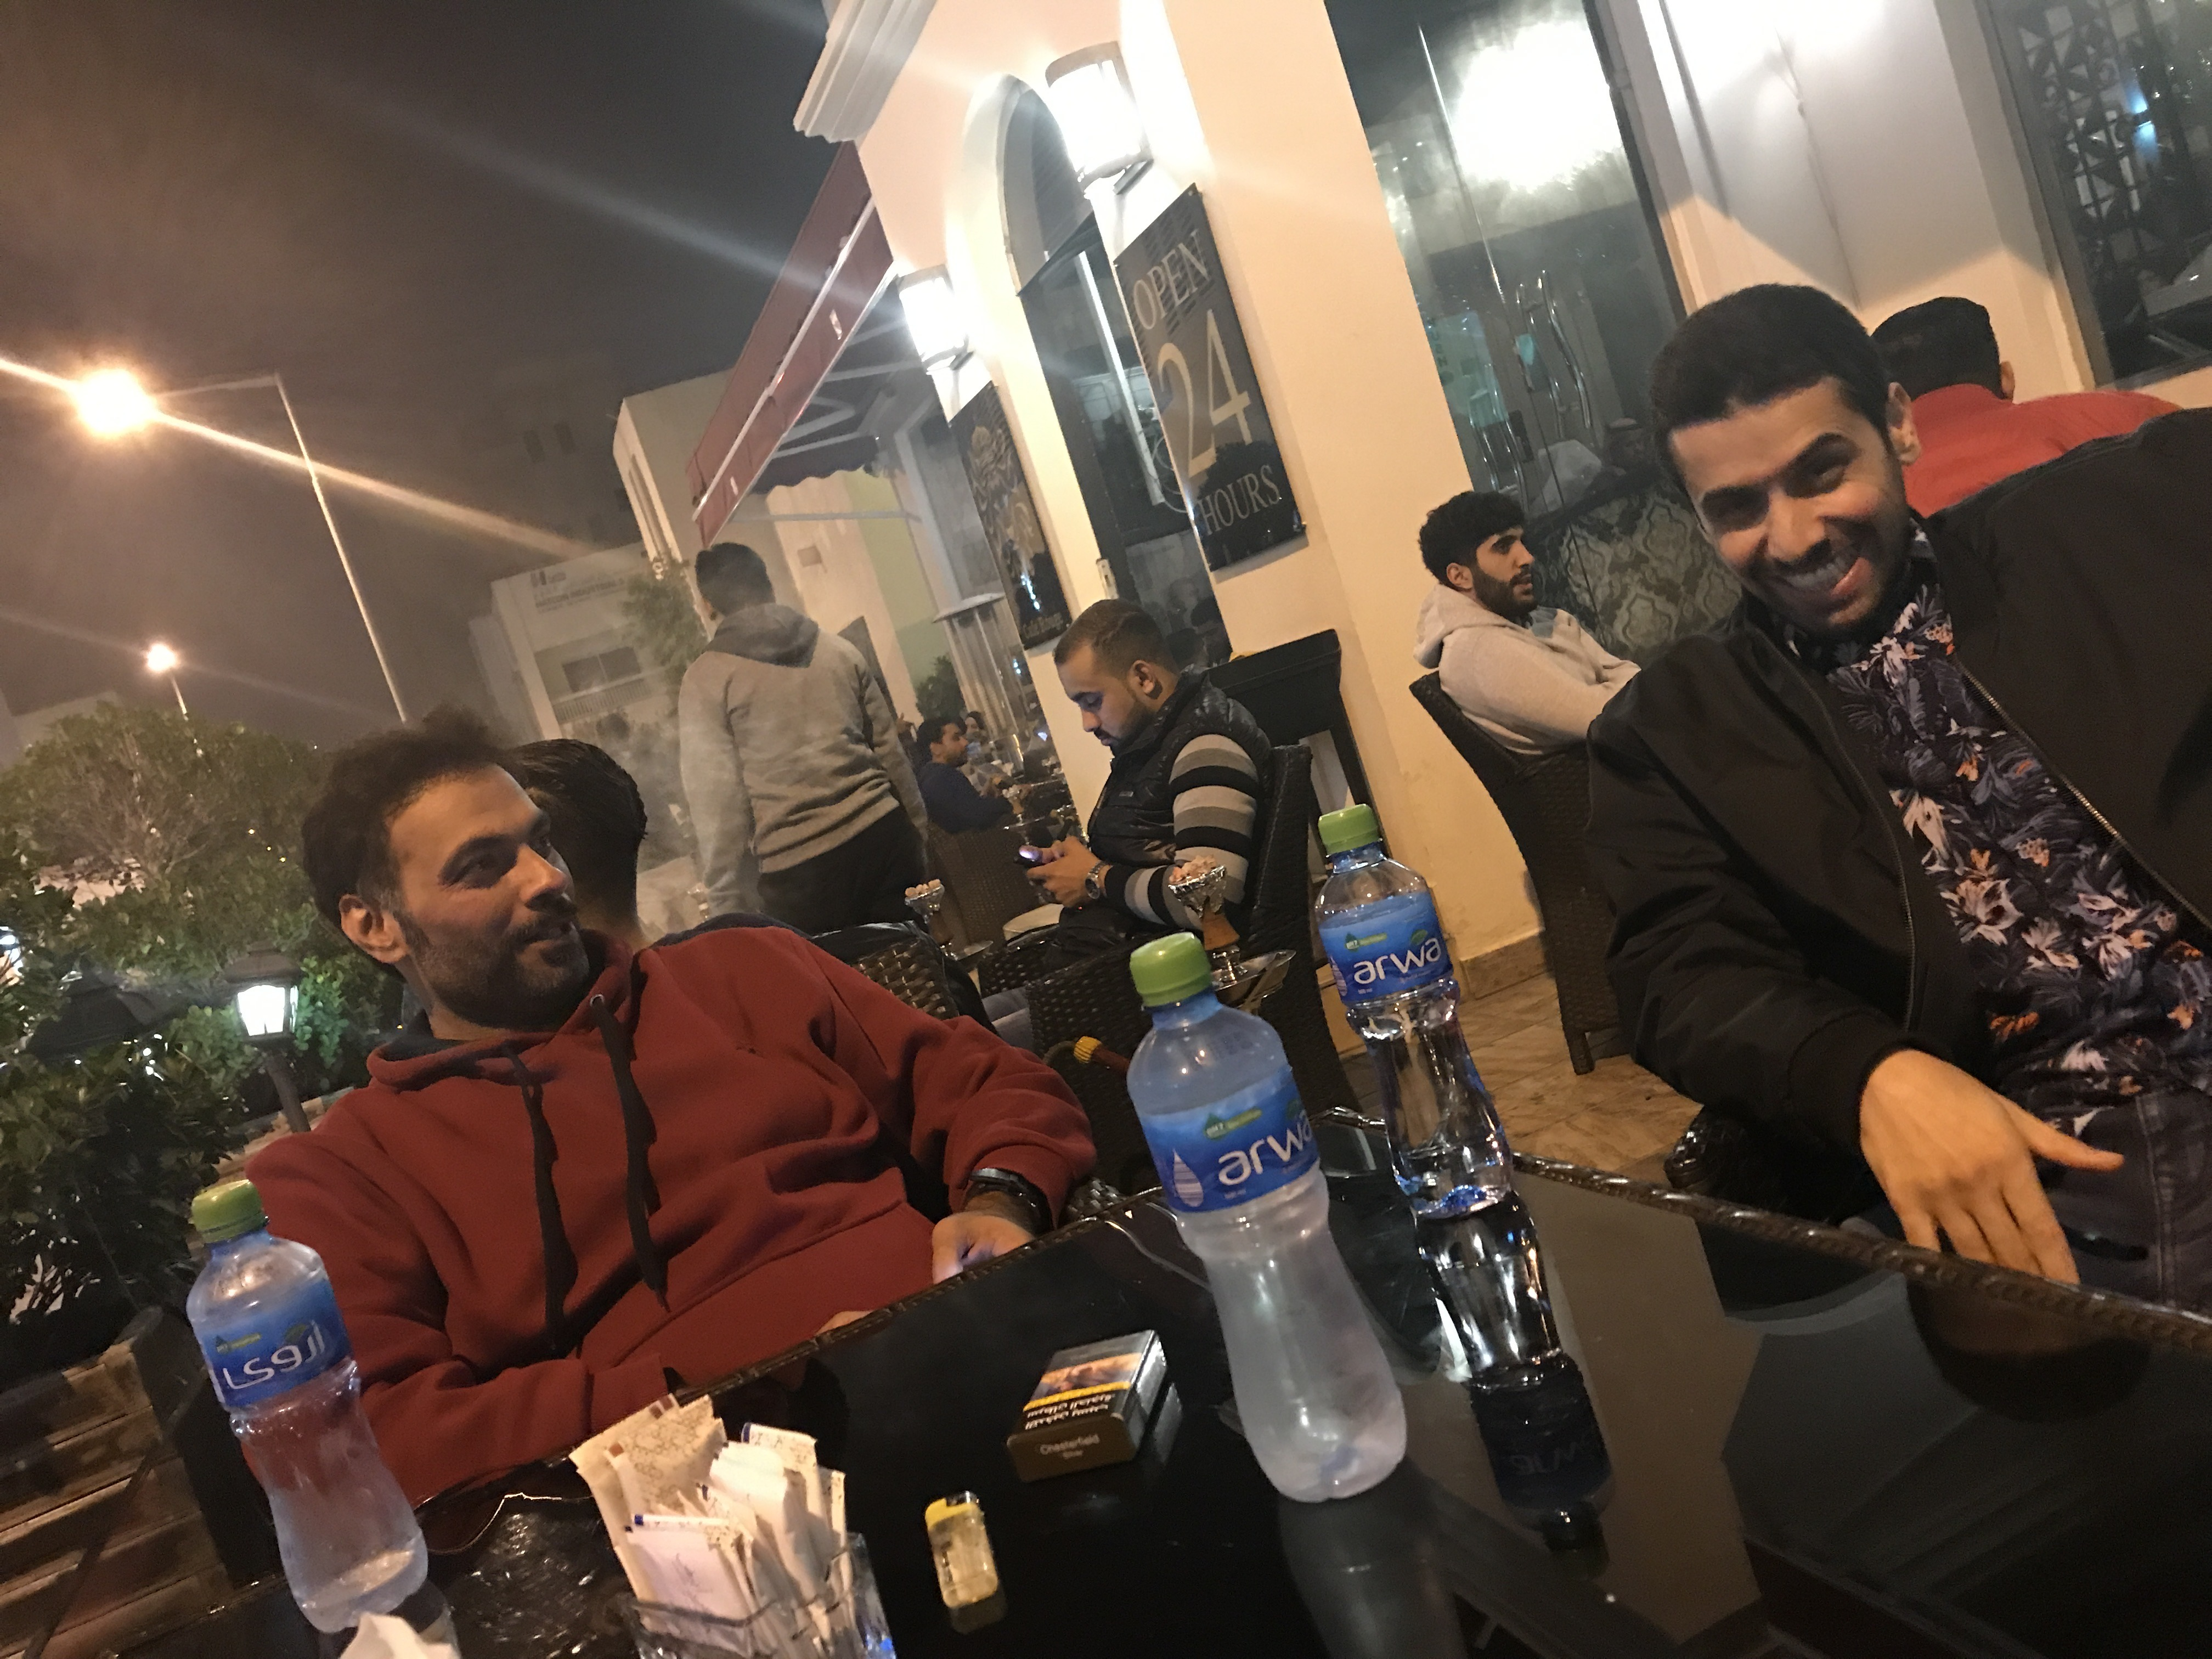 Good day with best friends on December, 21,2019 at 12:53AM😎 @ Cafe Rouge - Bahrain